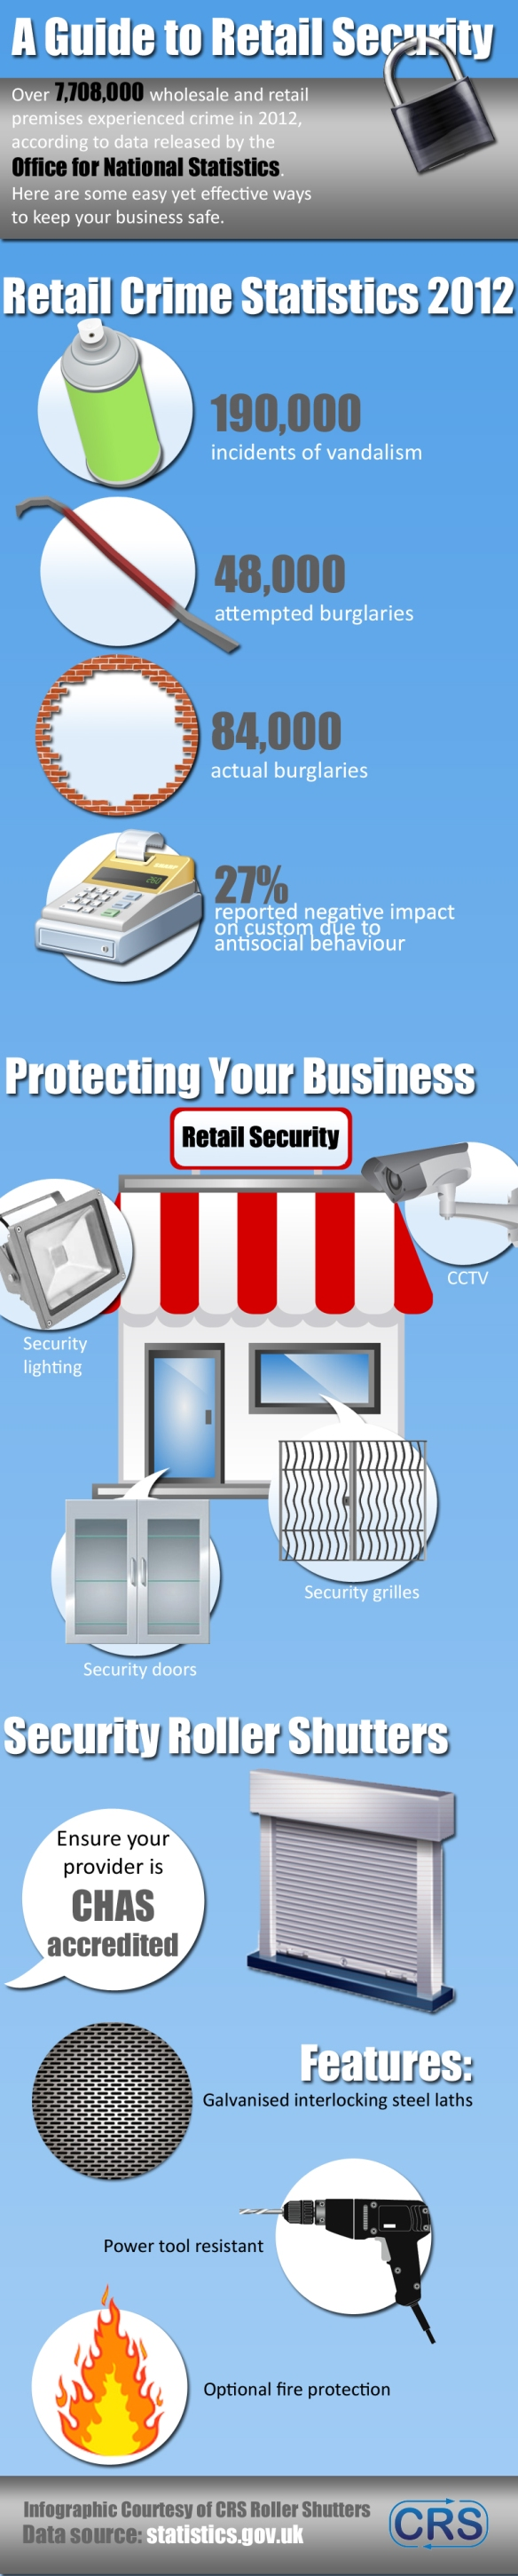 Retail Security Infographic CRS 13.6